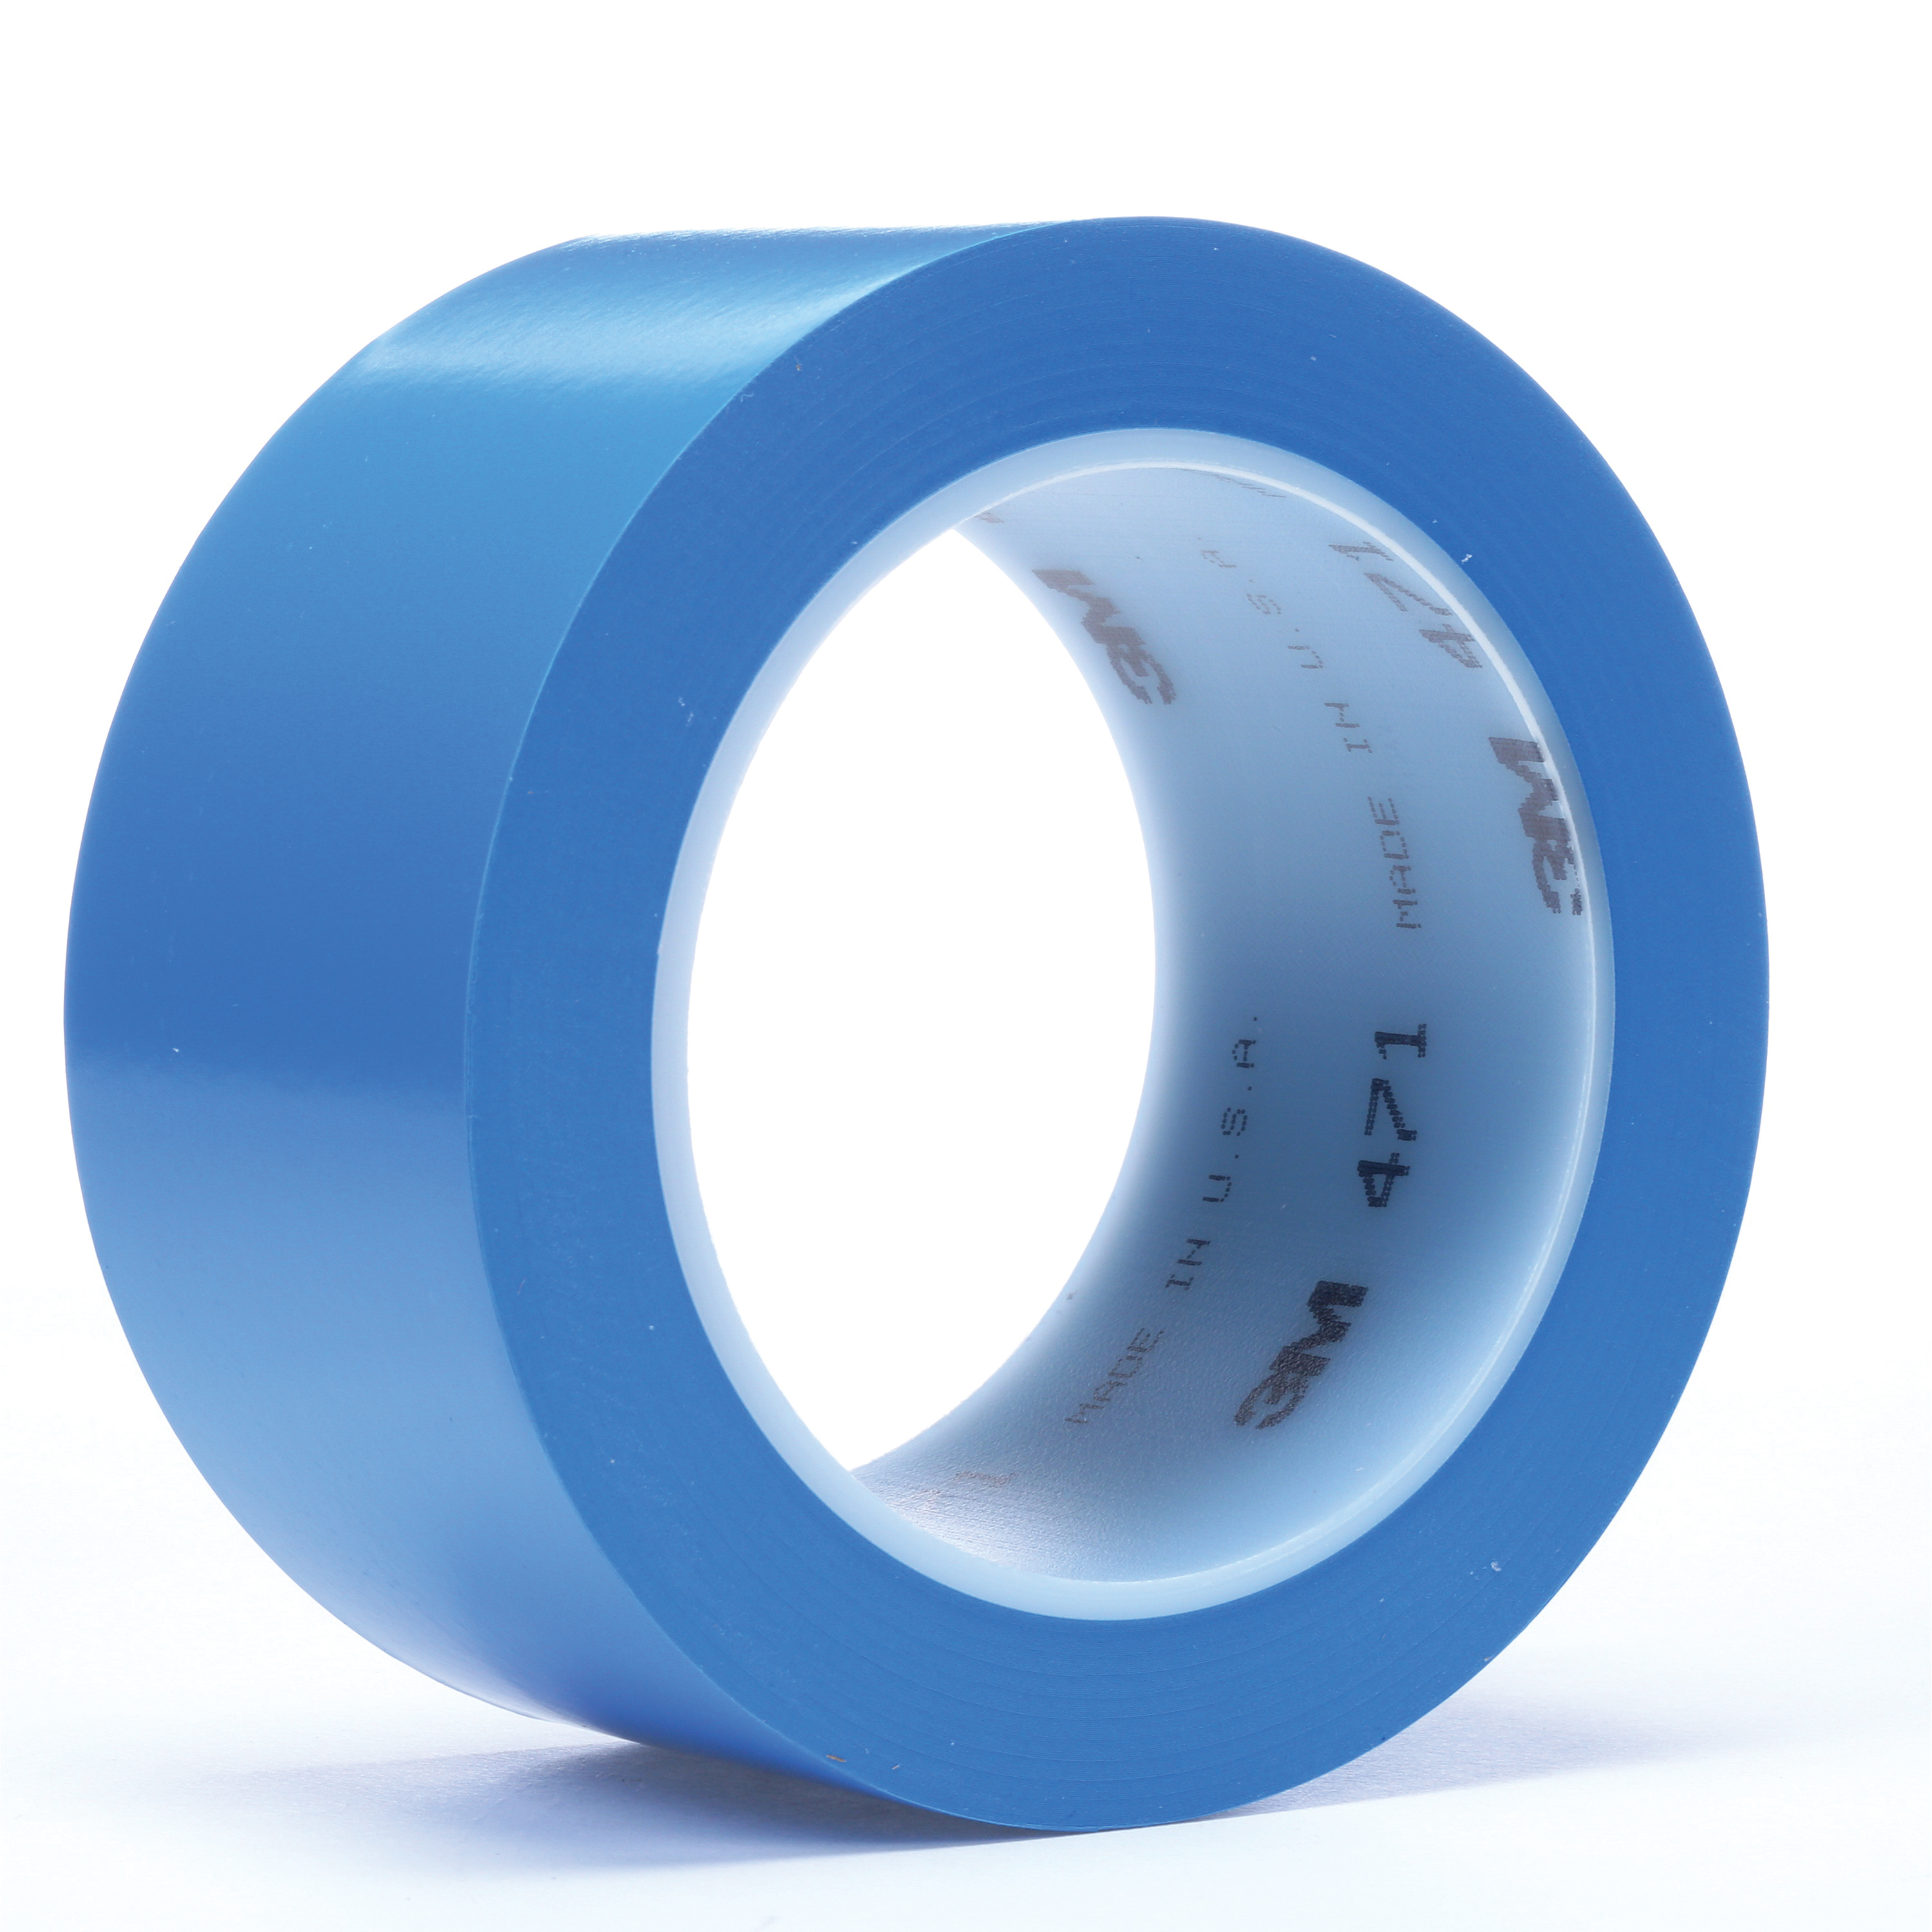 3M™ 021200-04308 High Performance Vinyl Tape, 36 yd L x 2 in W, 5.2 mil THK, Rubber Adhesive, Vinyl Backing, Blue